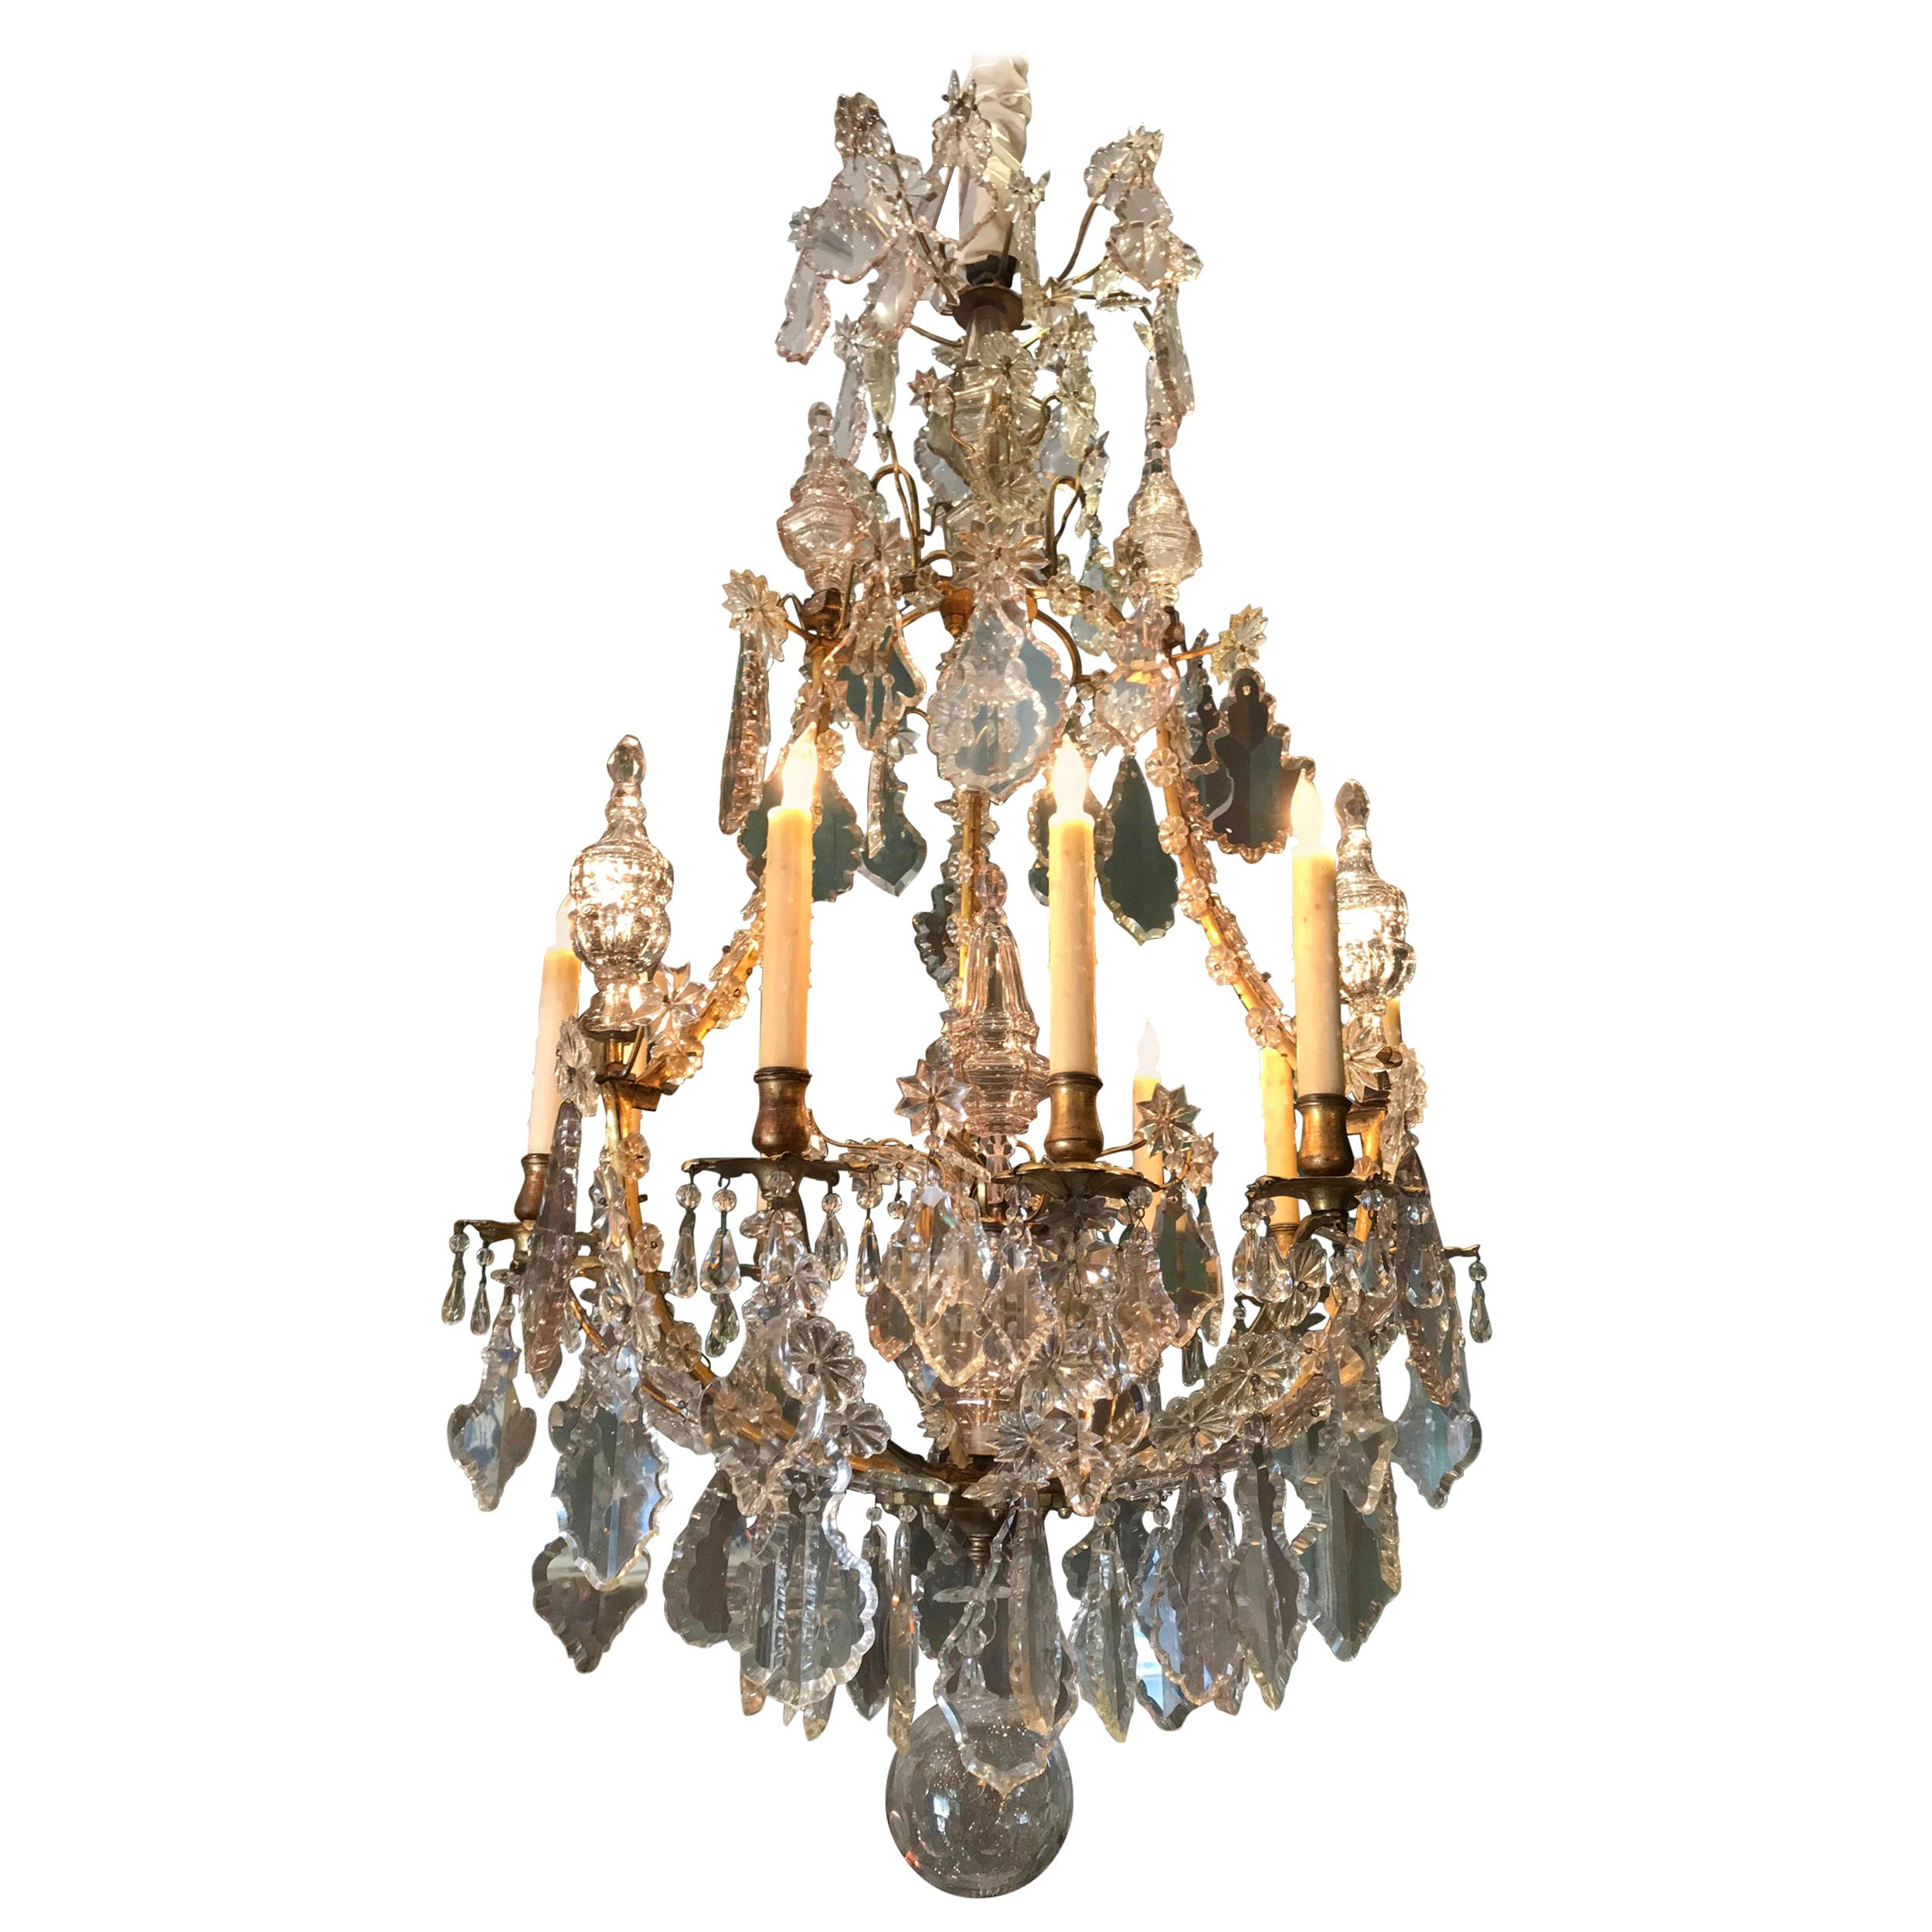 Large Antique 18th Century Crystal Chandelier ceiling light pendant Baccarat LA